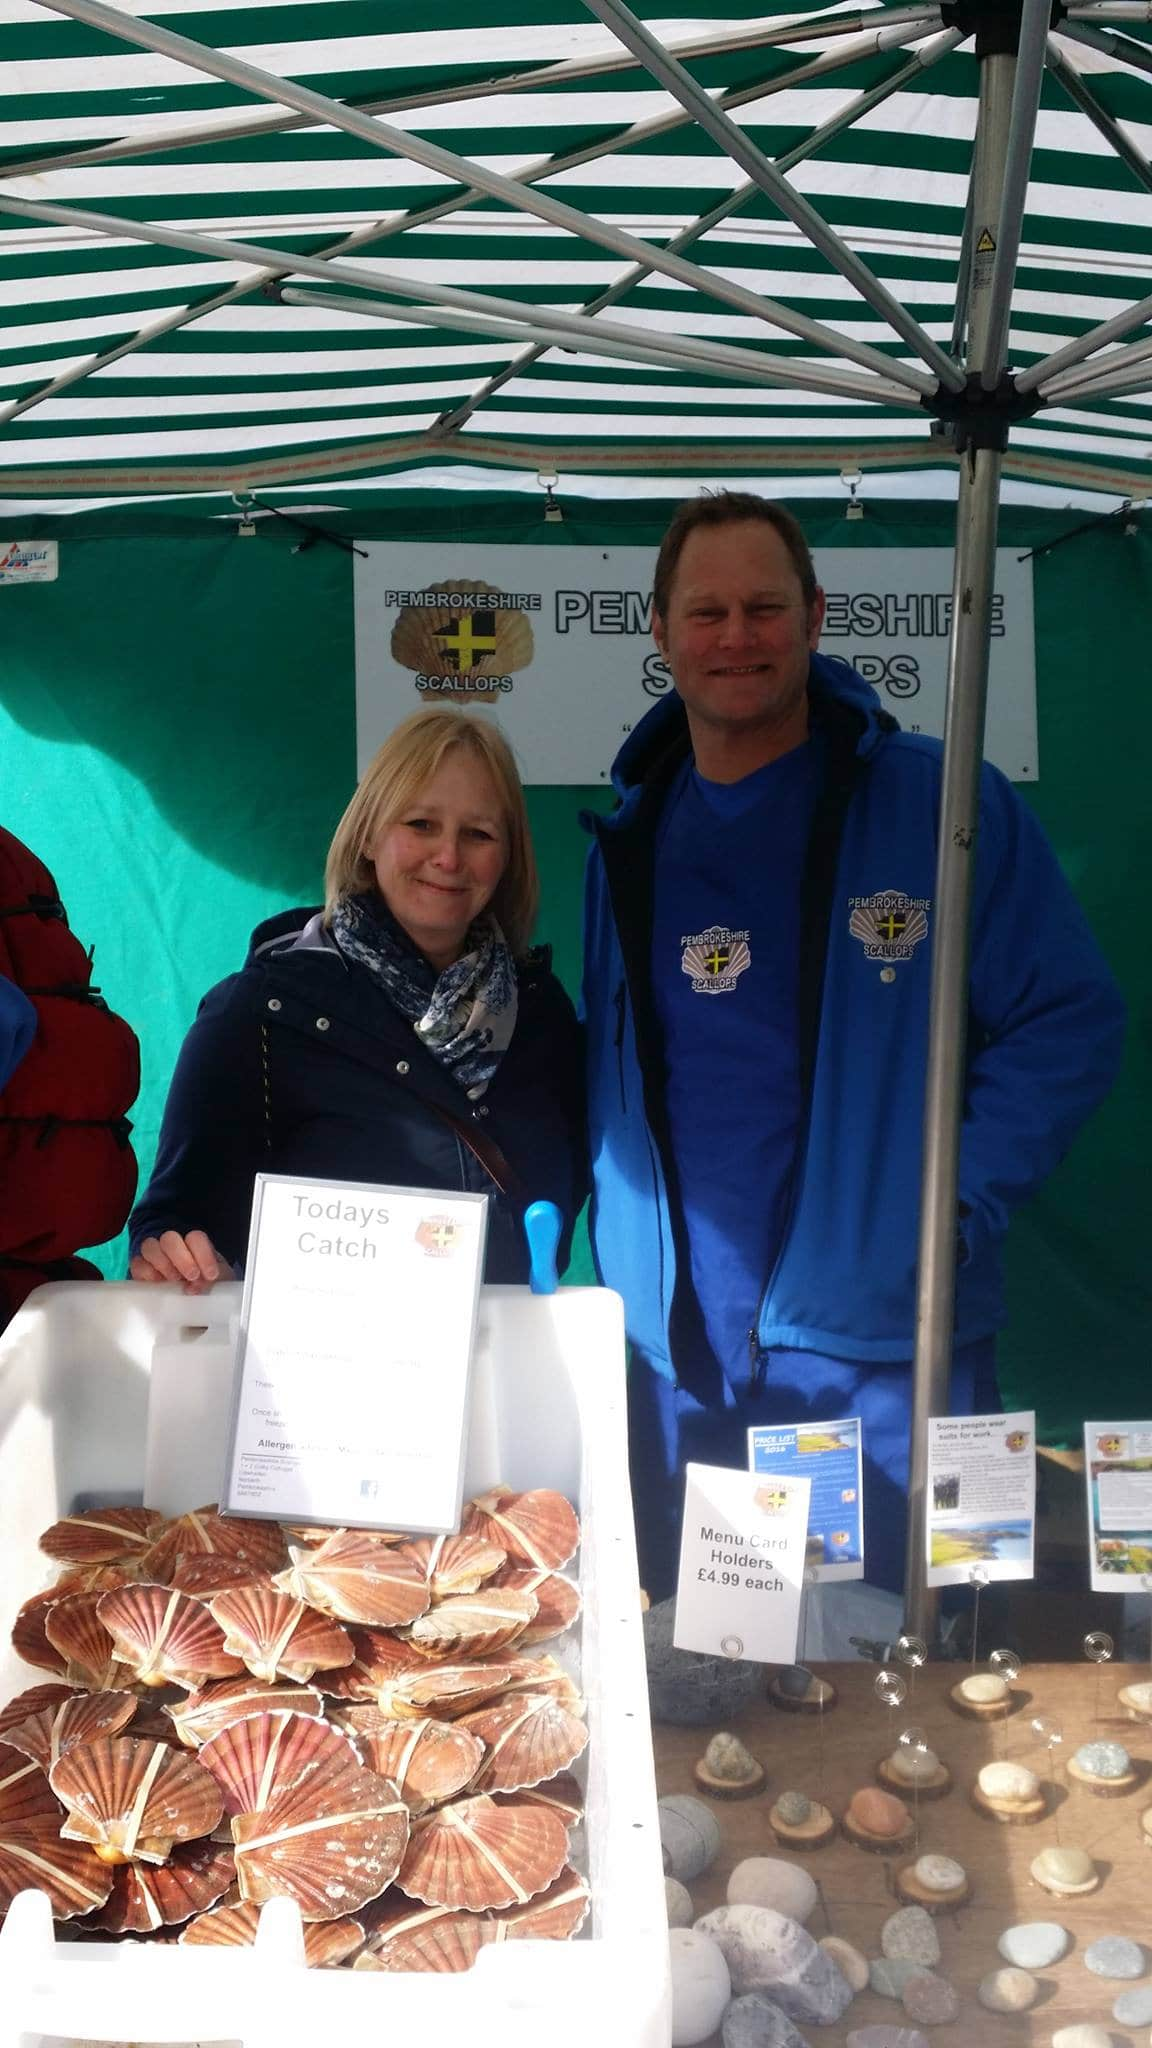 Pembrokeshire Scallops at Haverfordwest Farmers Market, Friday mornings 0900-1200